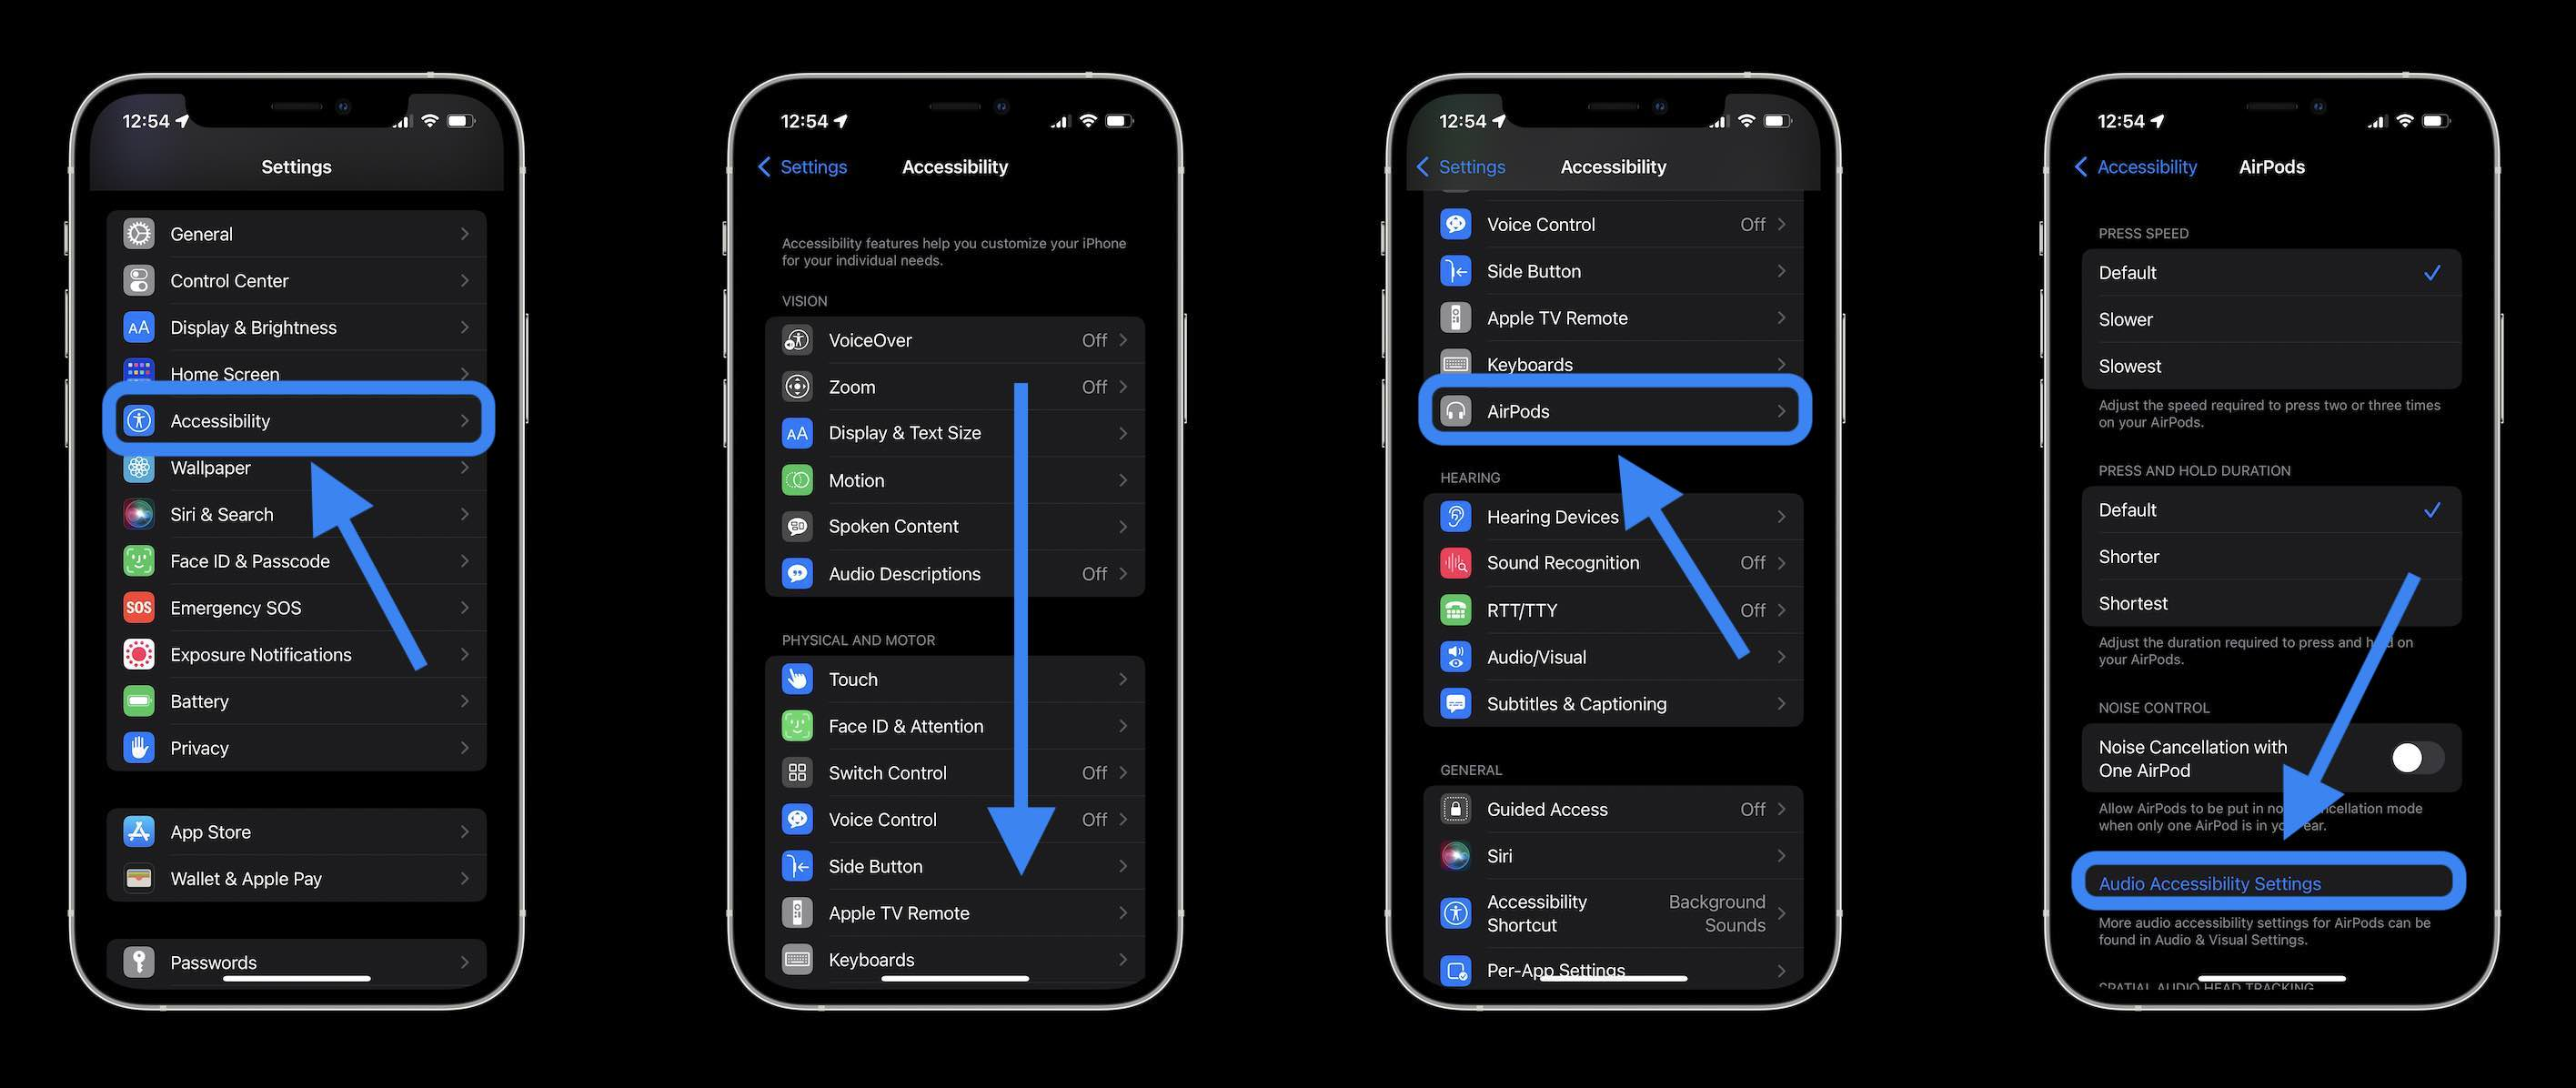 Turn on AirPods Pro Conversation Boost - Settings > Accessibility > AirPods > Audio Accessibility Settings